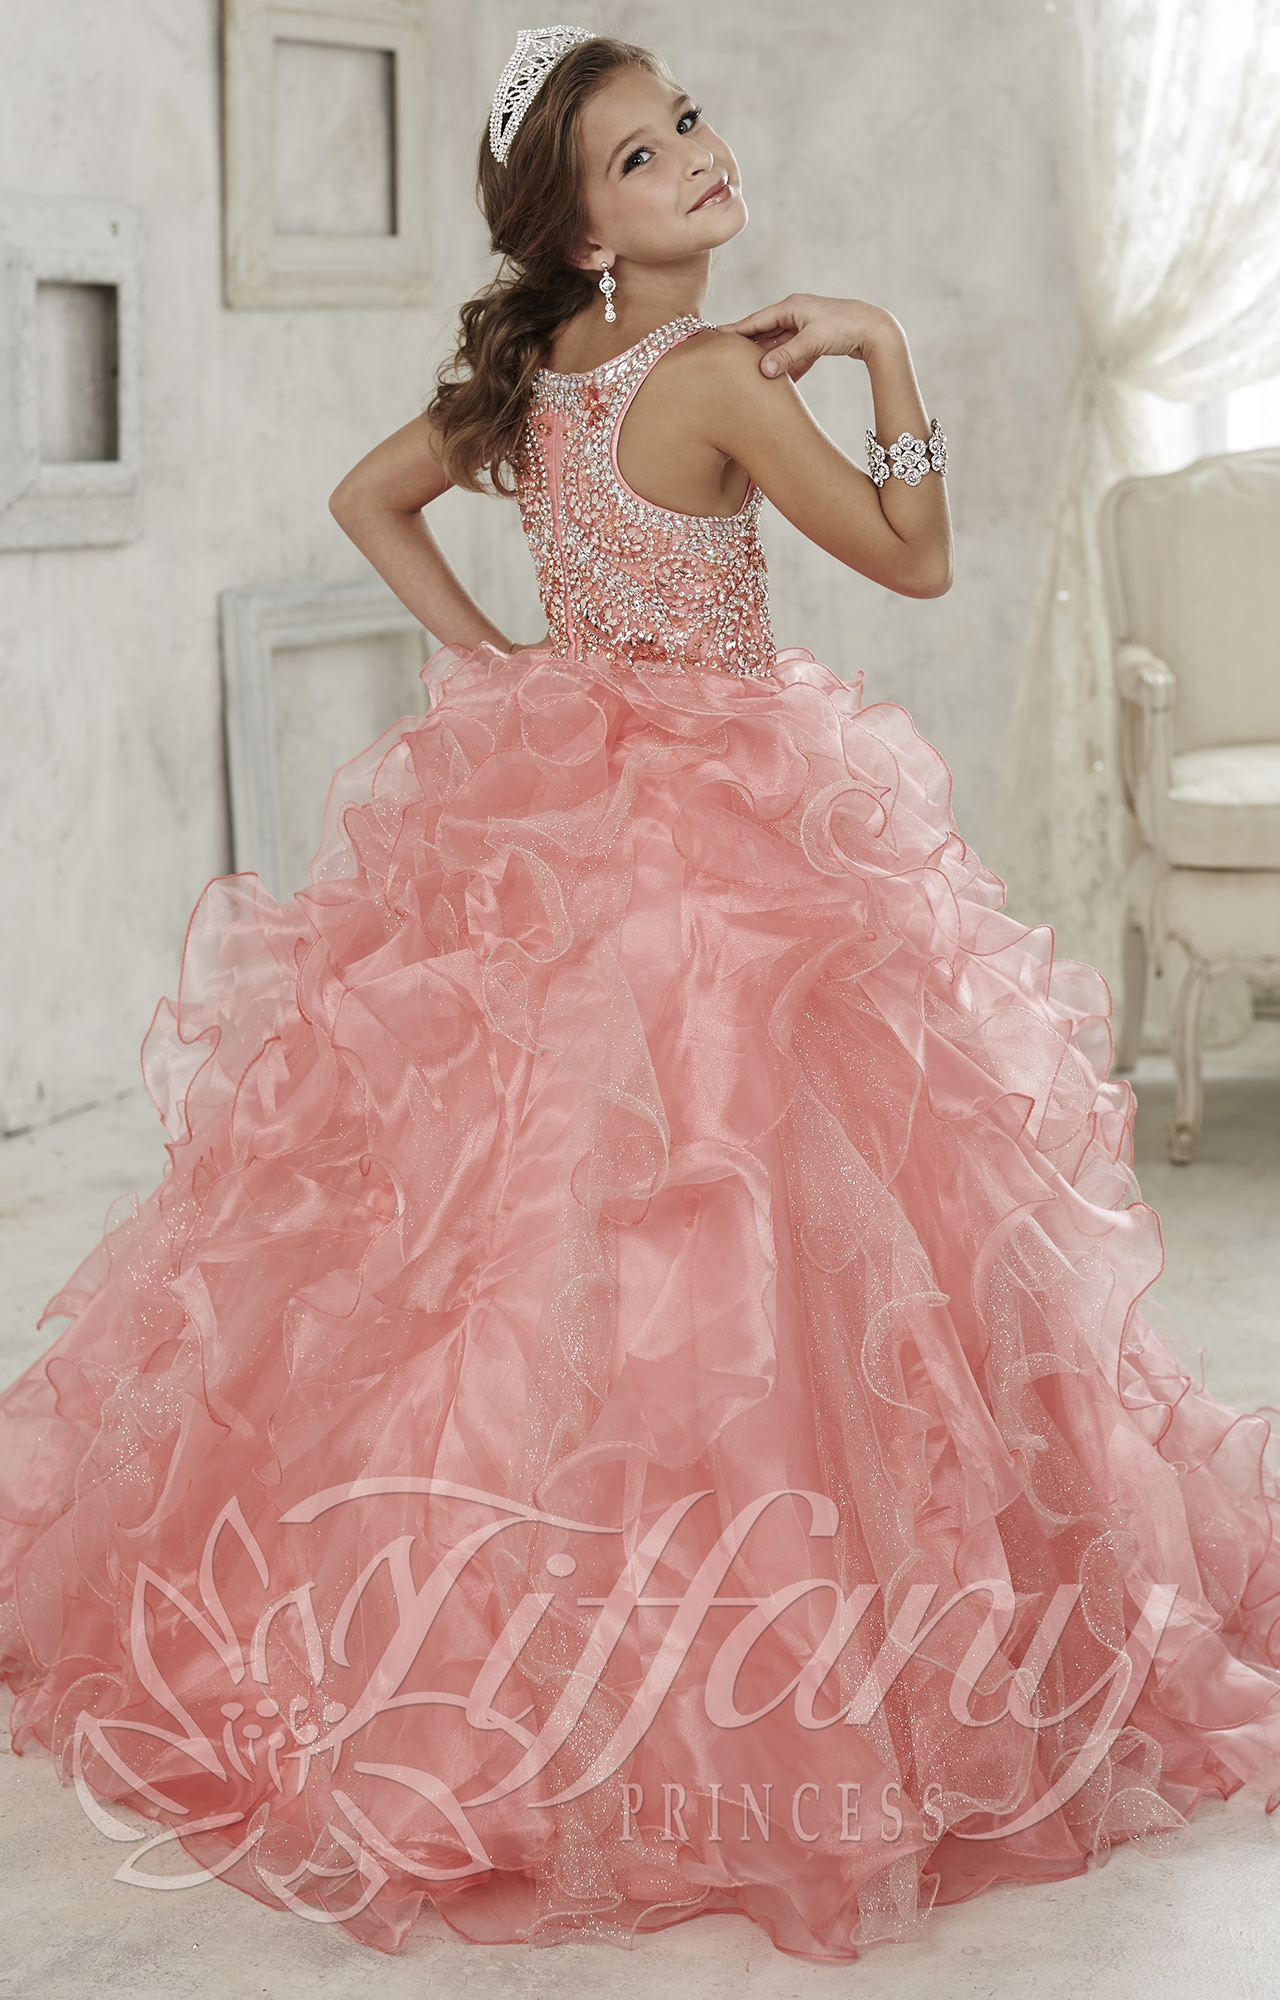 Tiffany Princess 13444  Wear the Crown Dress Prom Dress